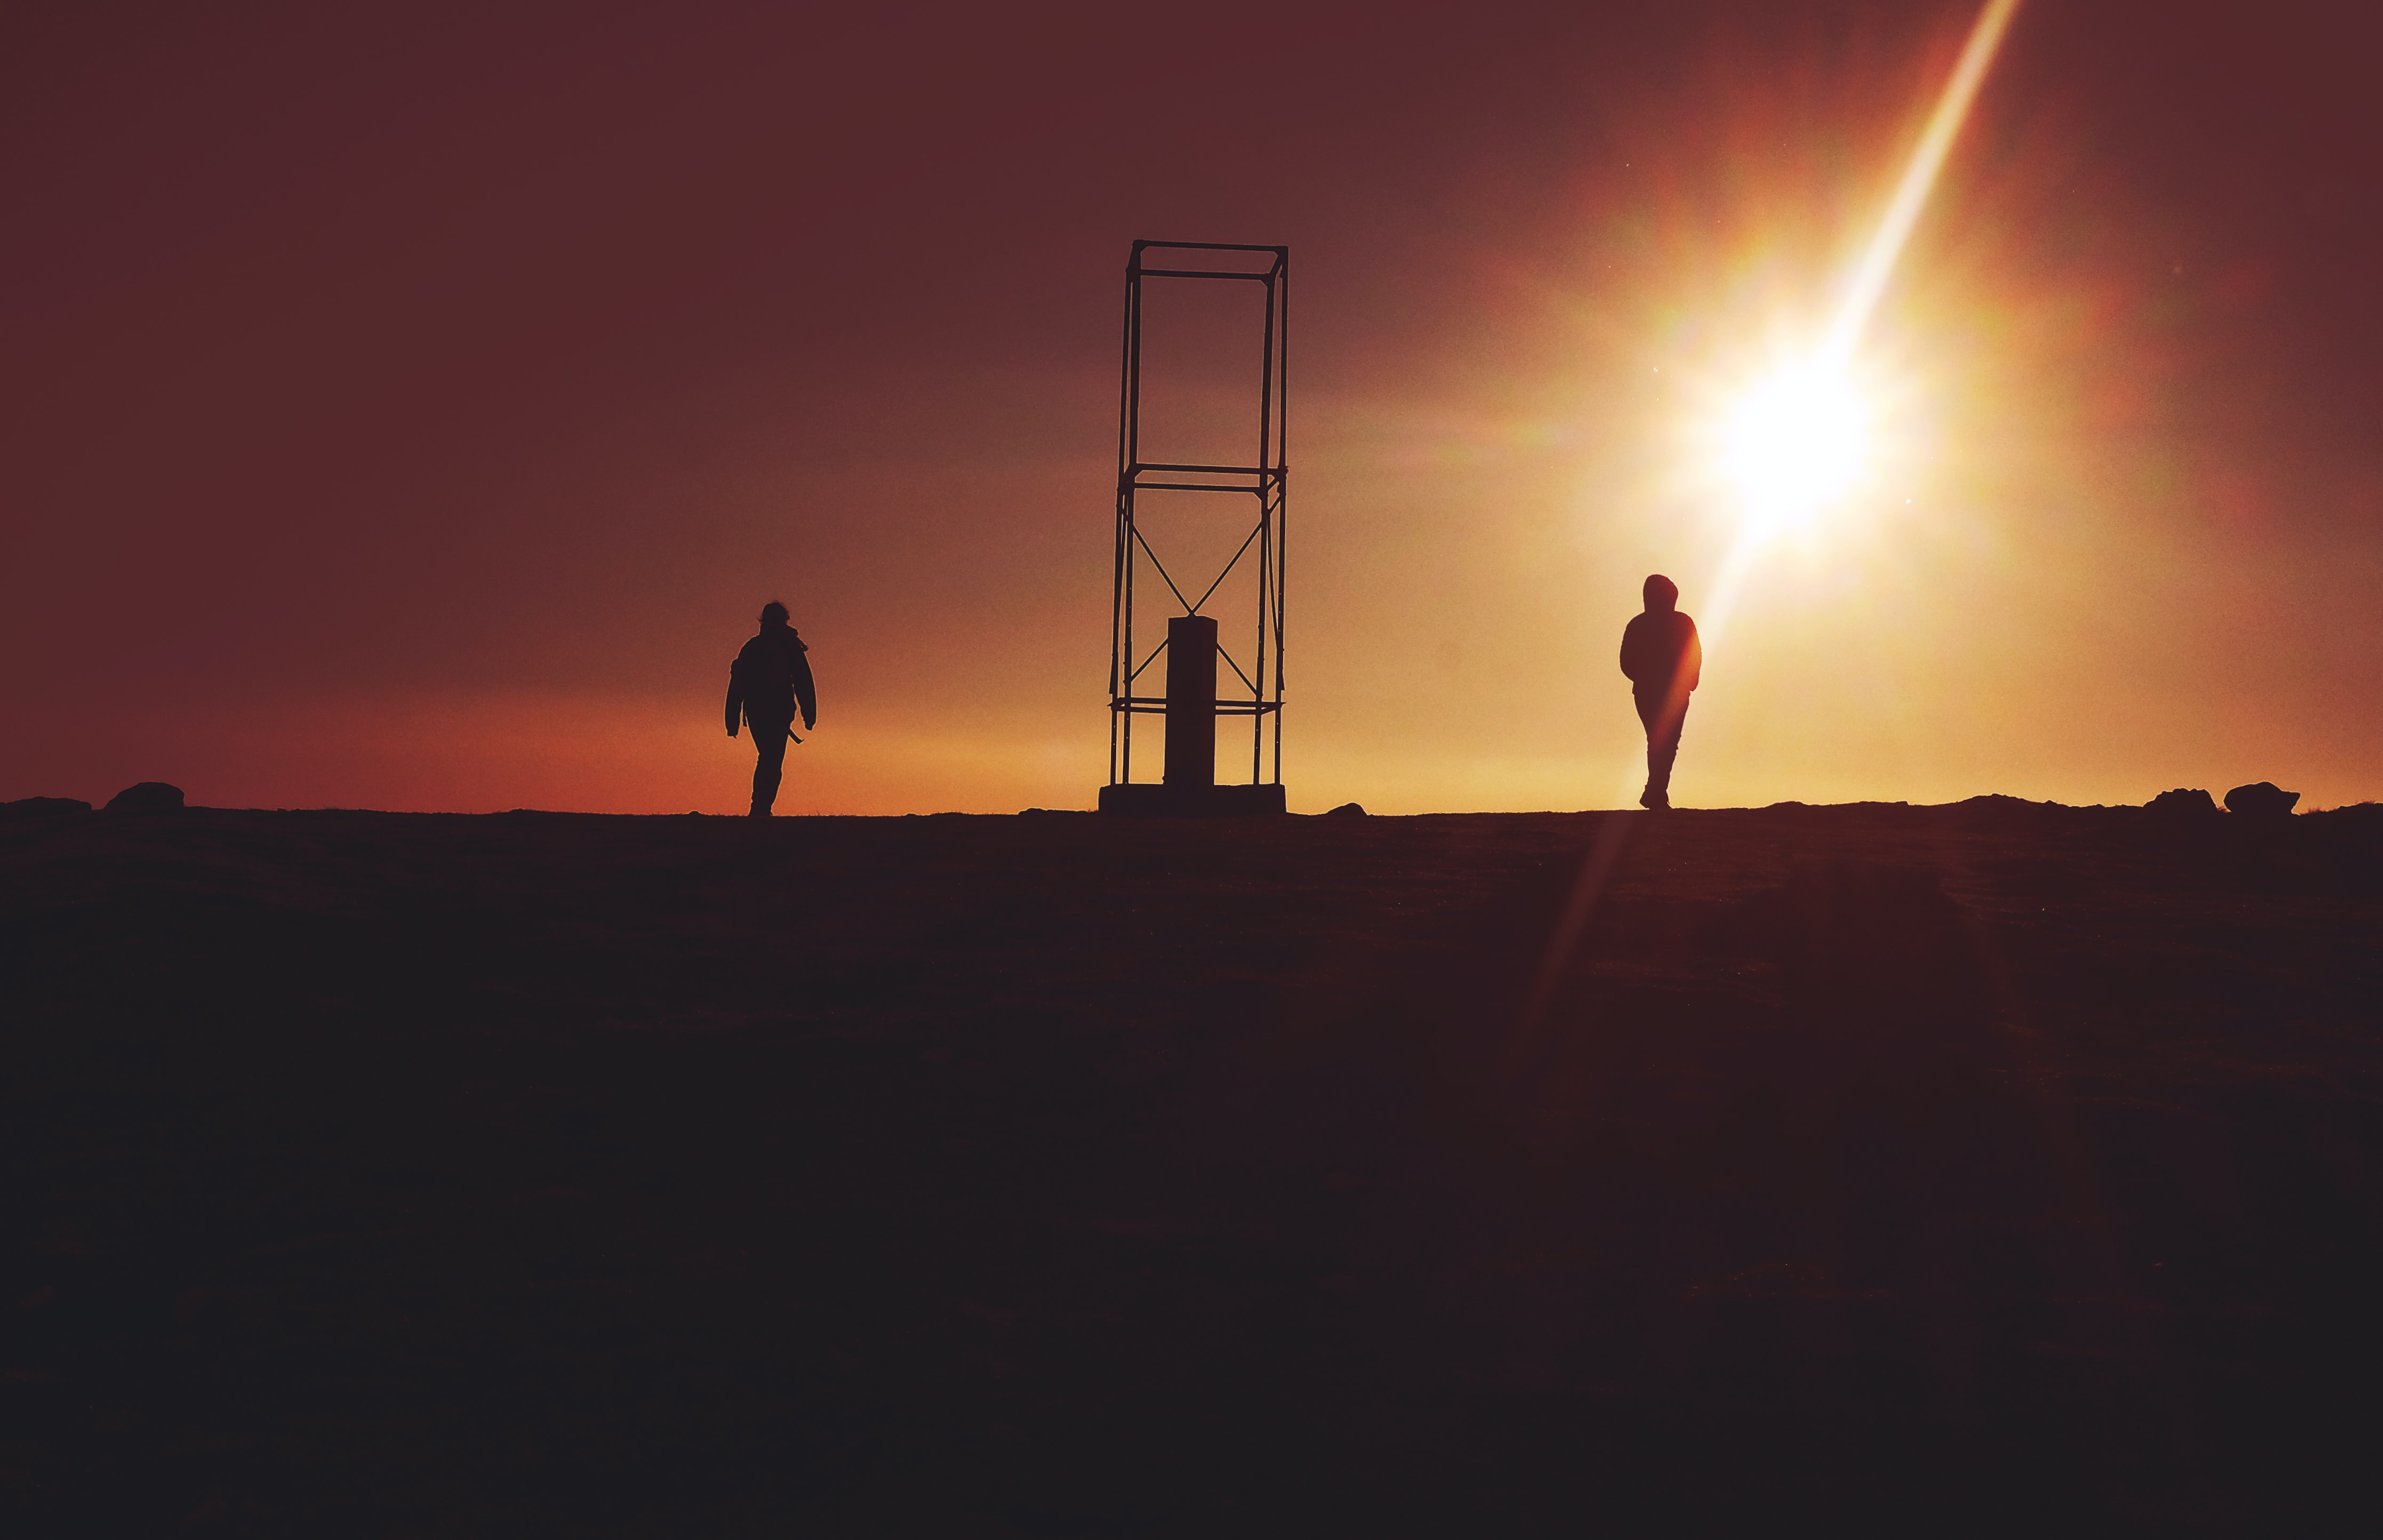 silhouette of two person near gray metal frame during sunet